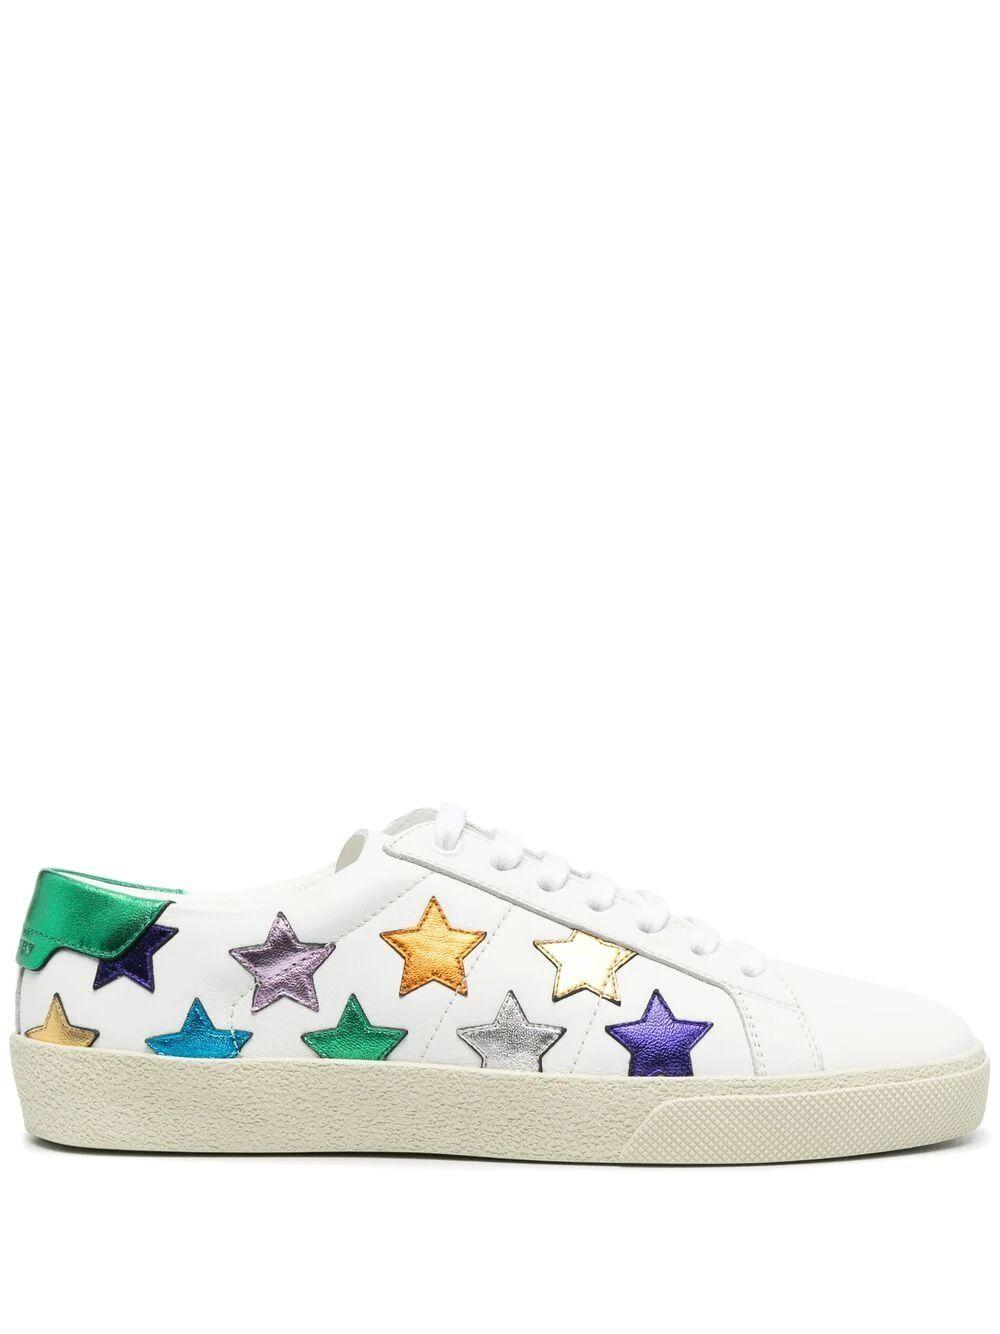 California Star Sneaker